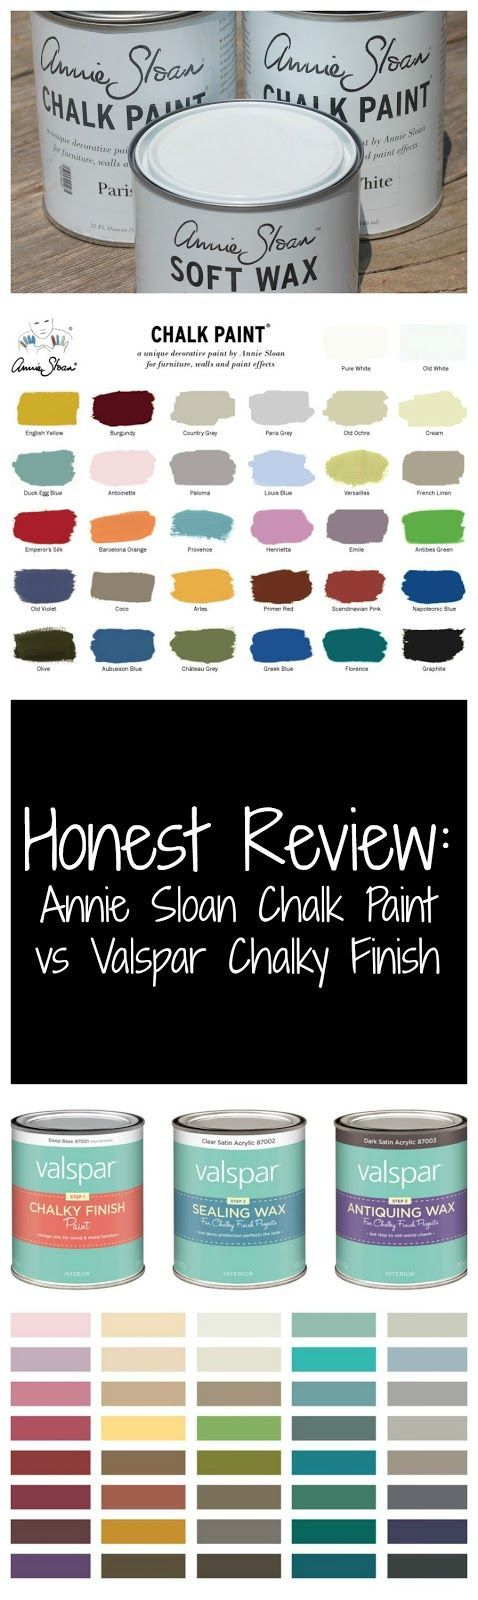 Honest Review – Valspar Chalky Finish vs. Annie Sloan Chalk Paint